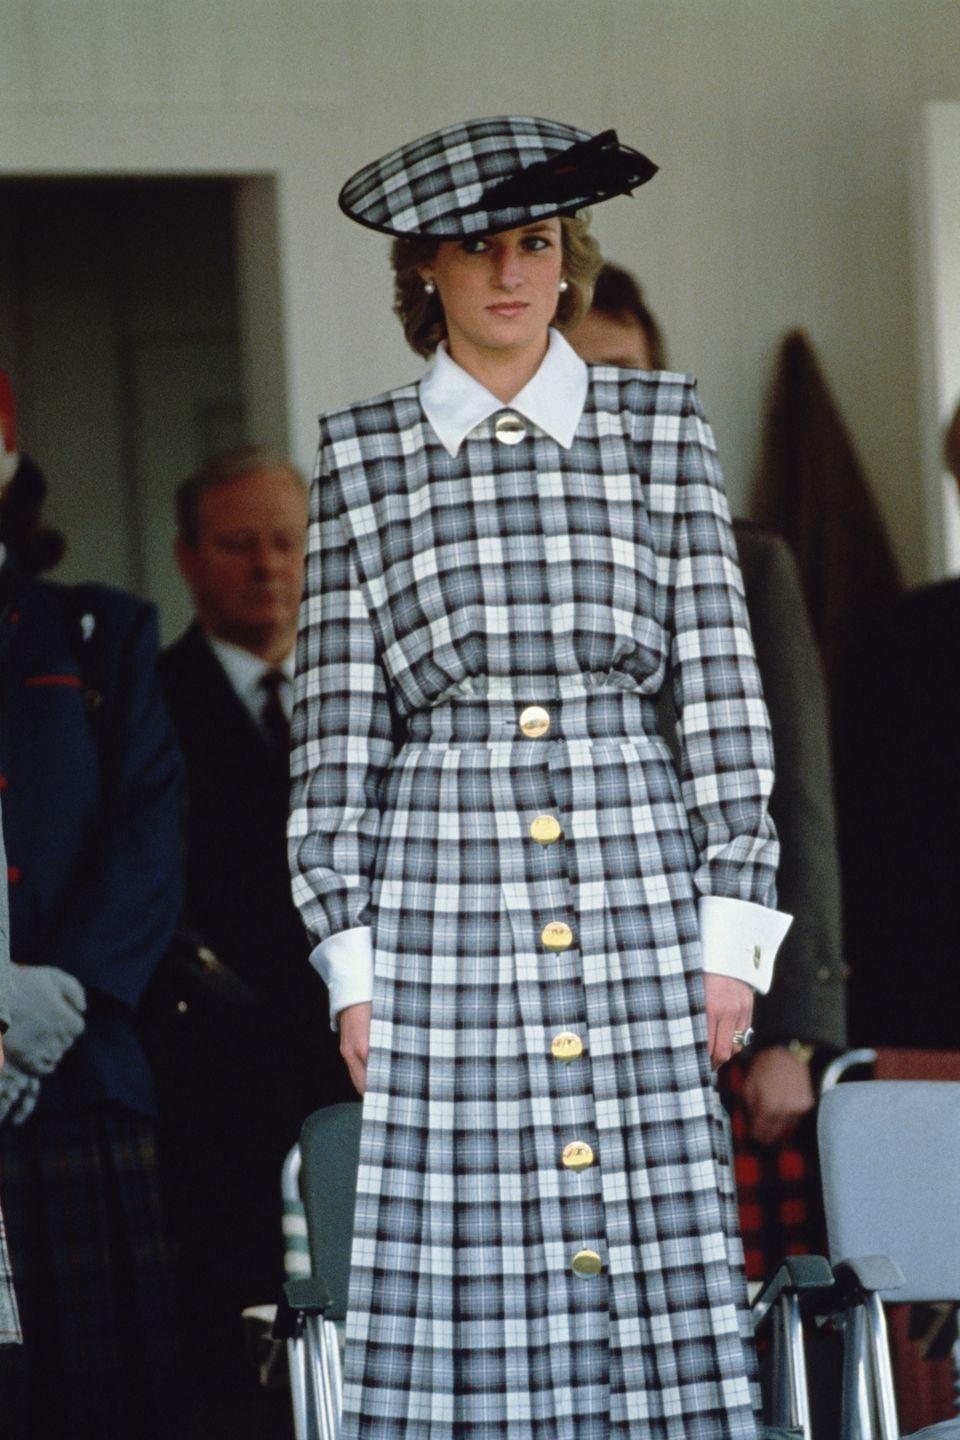 <p>Even when Princess Diana wore more subdued colors, she still went big. Case in point: This matching Catherine Walker hat-and-dress combo she wore to the Braemar Games in Scotland in 1989.</p>